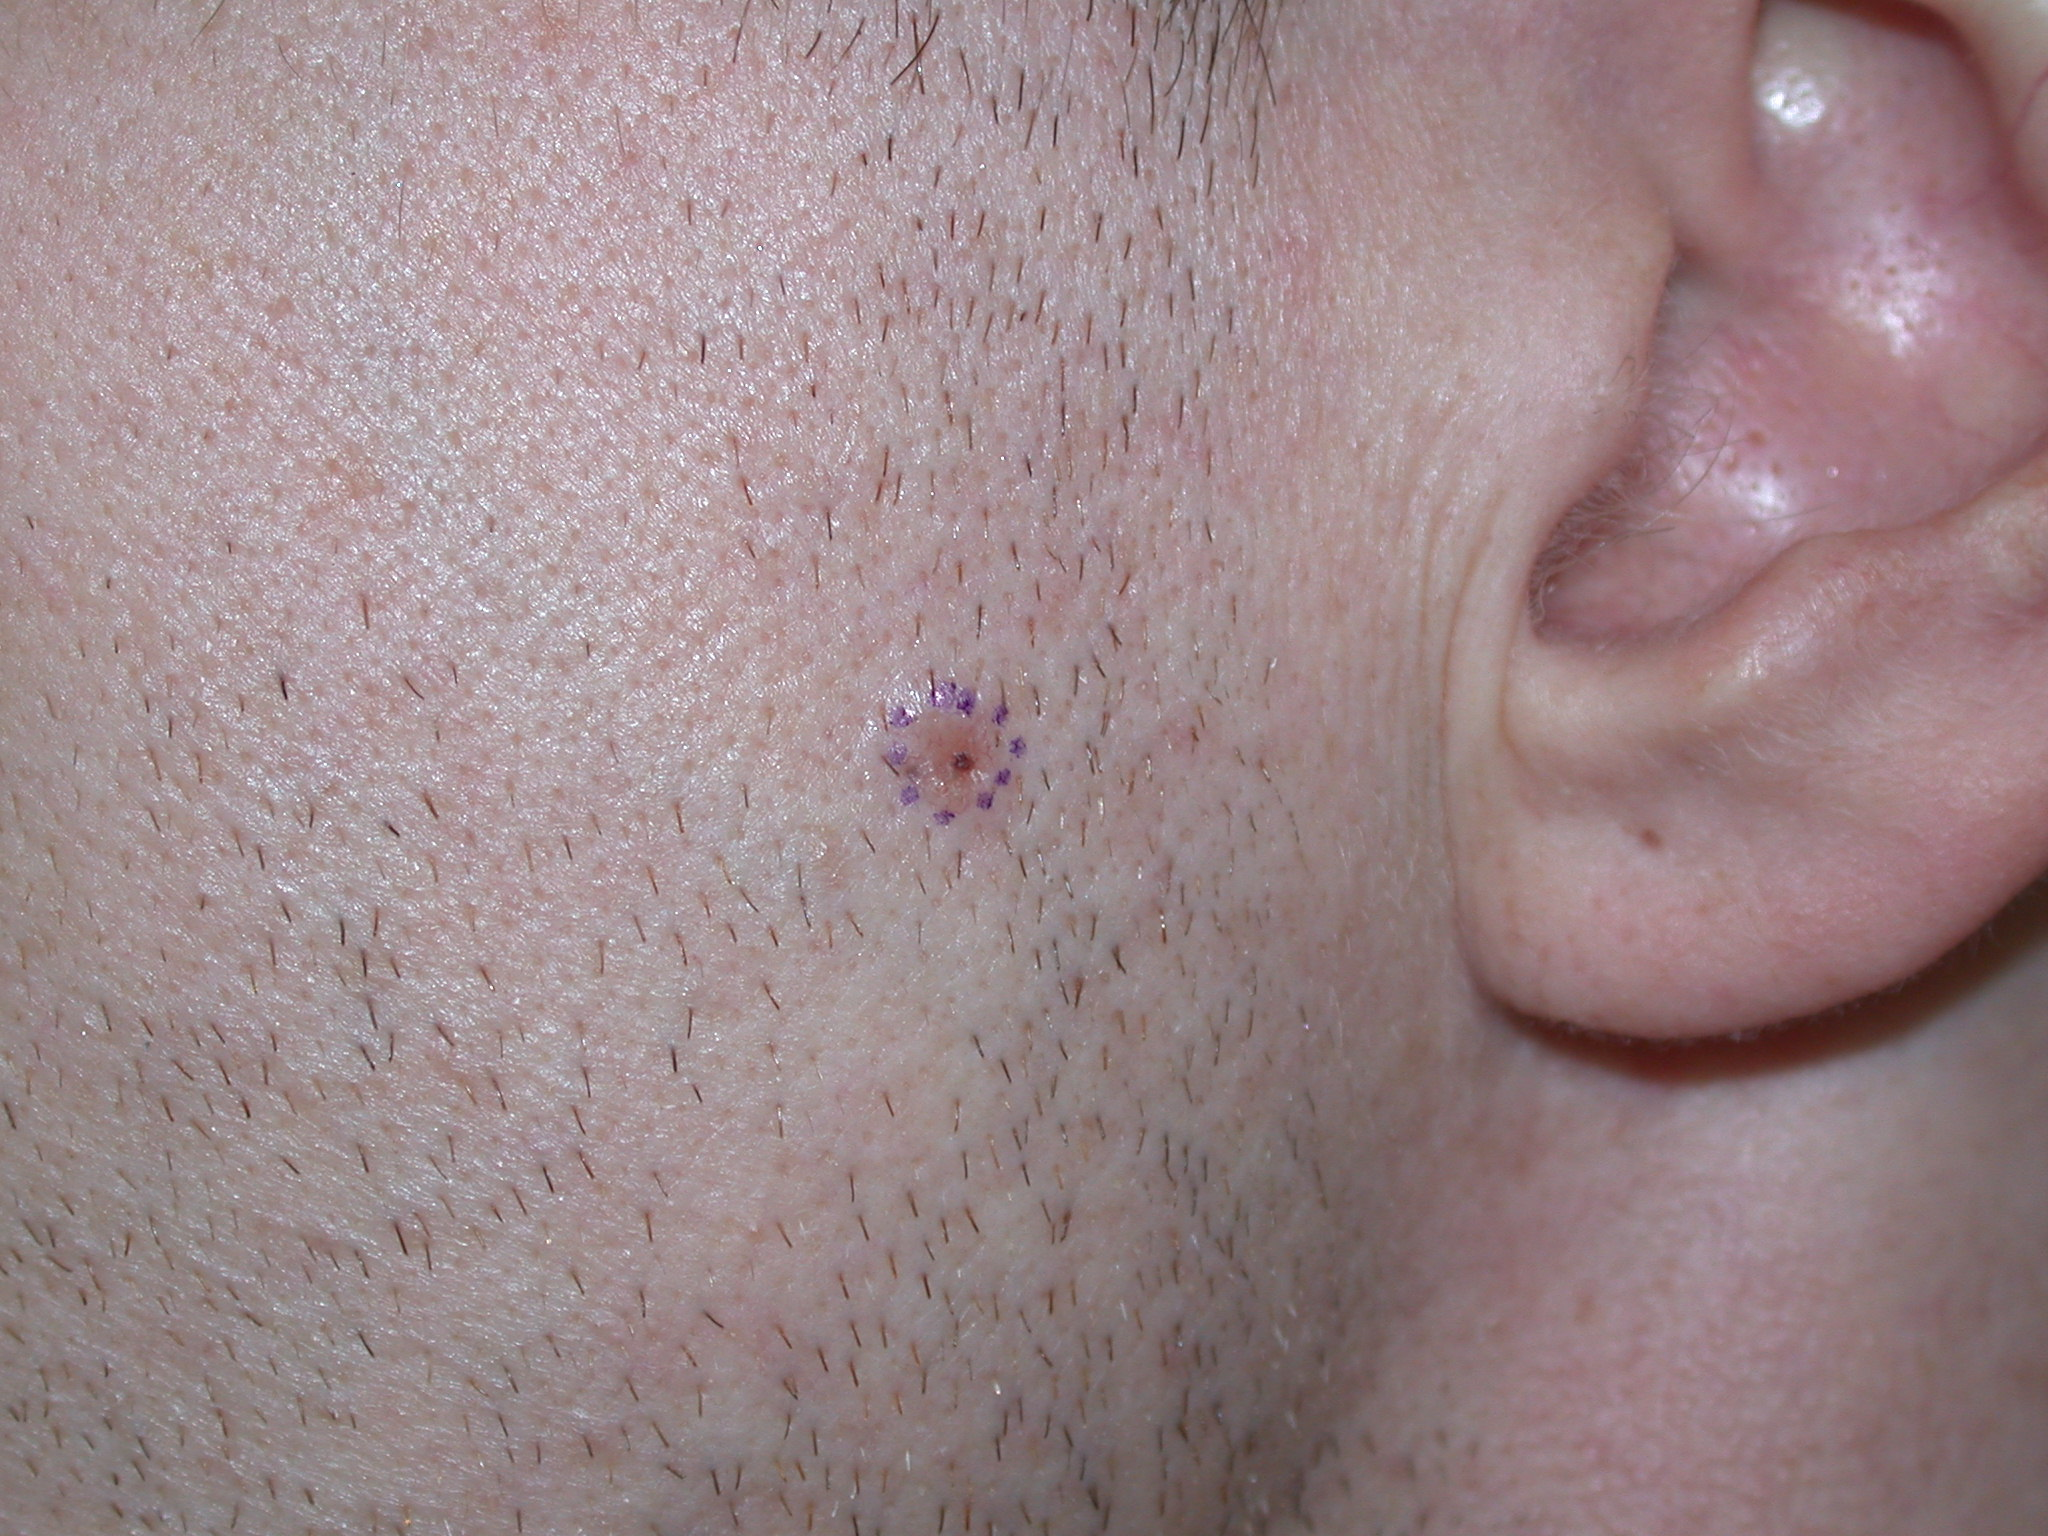 BCC on the cheek – image reproduced with permission of Dr Chris Kearney